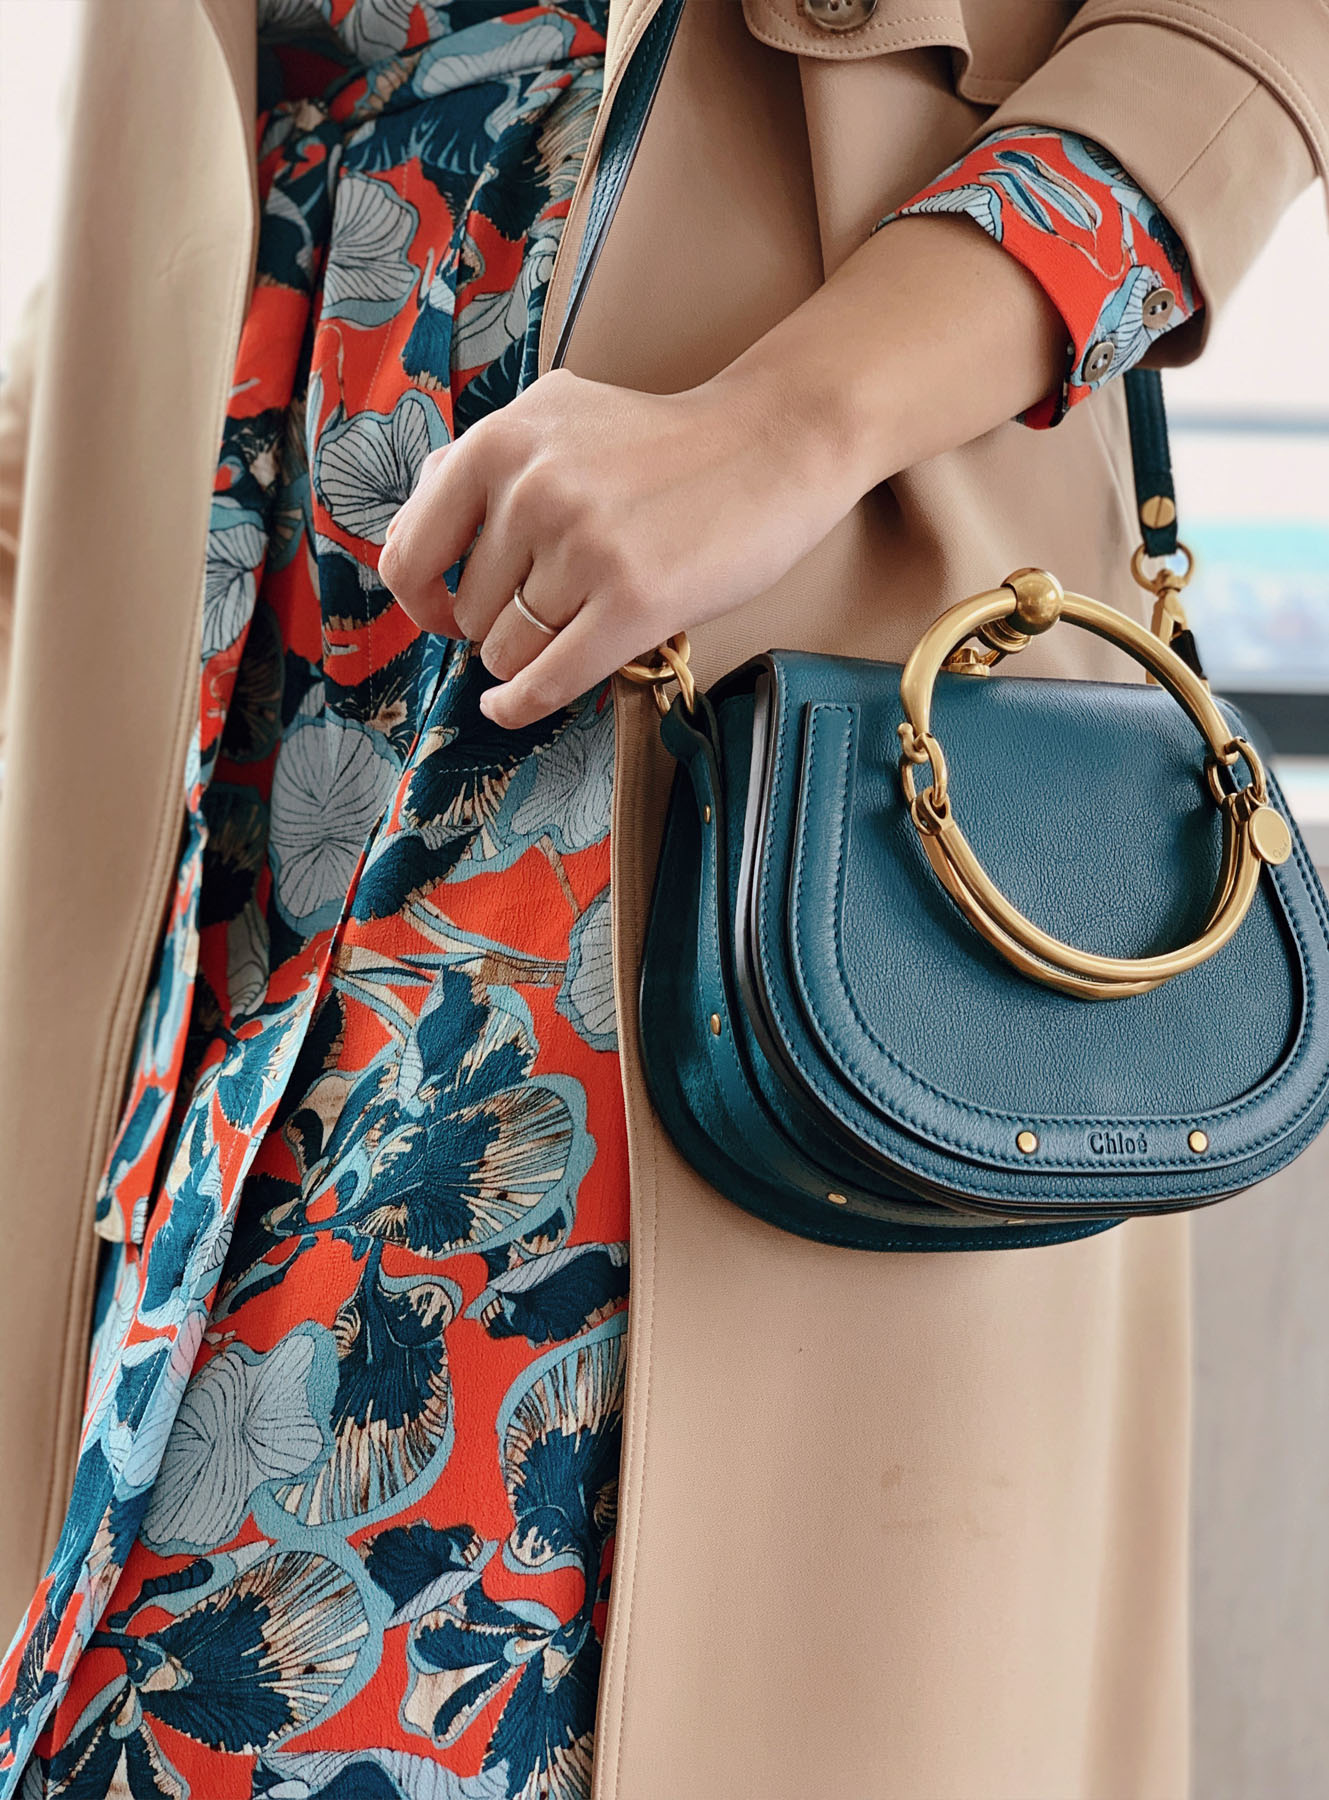 Style Midi Dress For Early Spring - Chloe Nile Bag